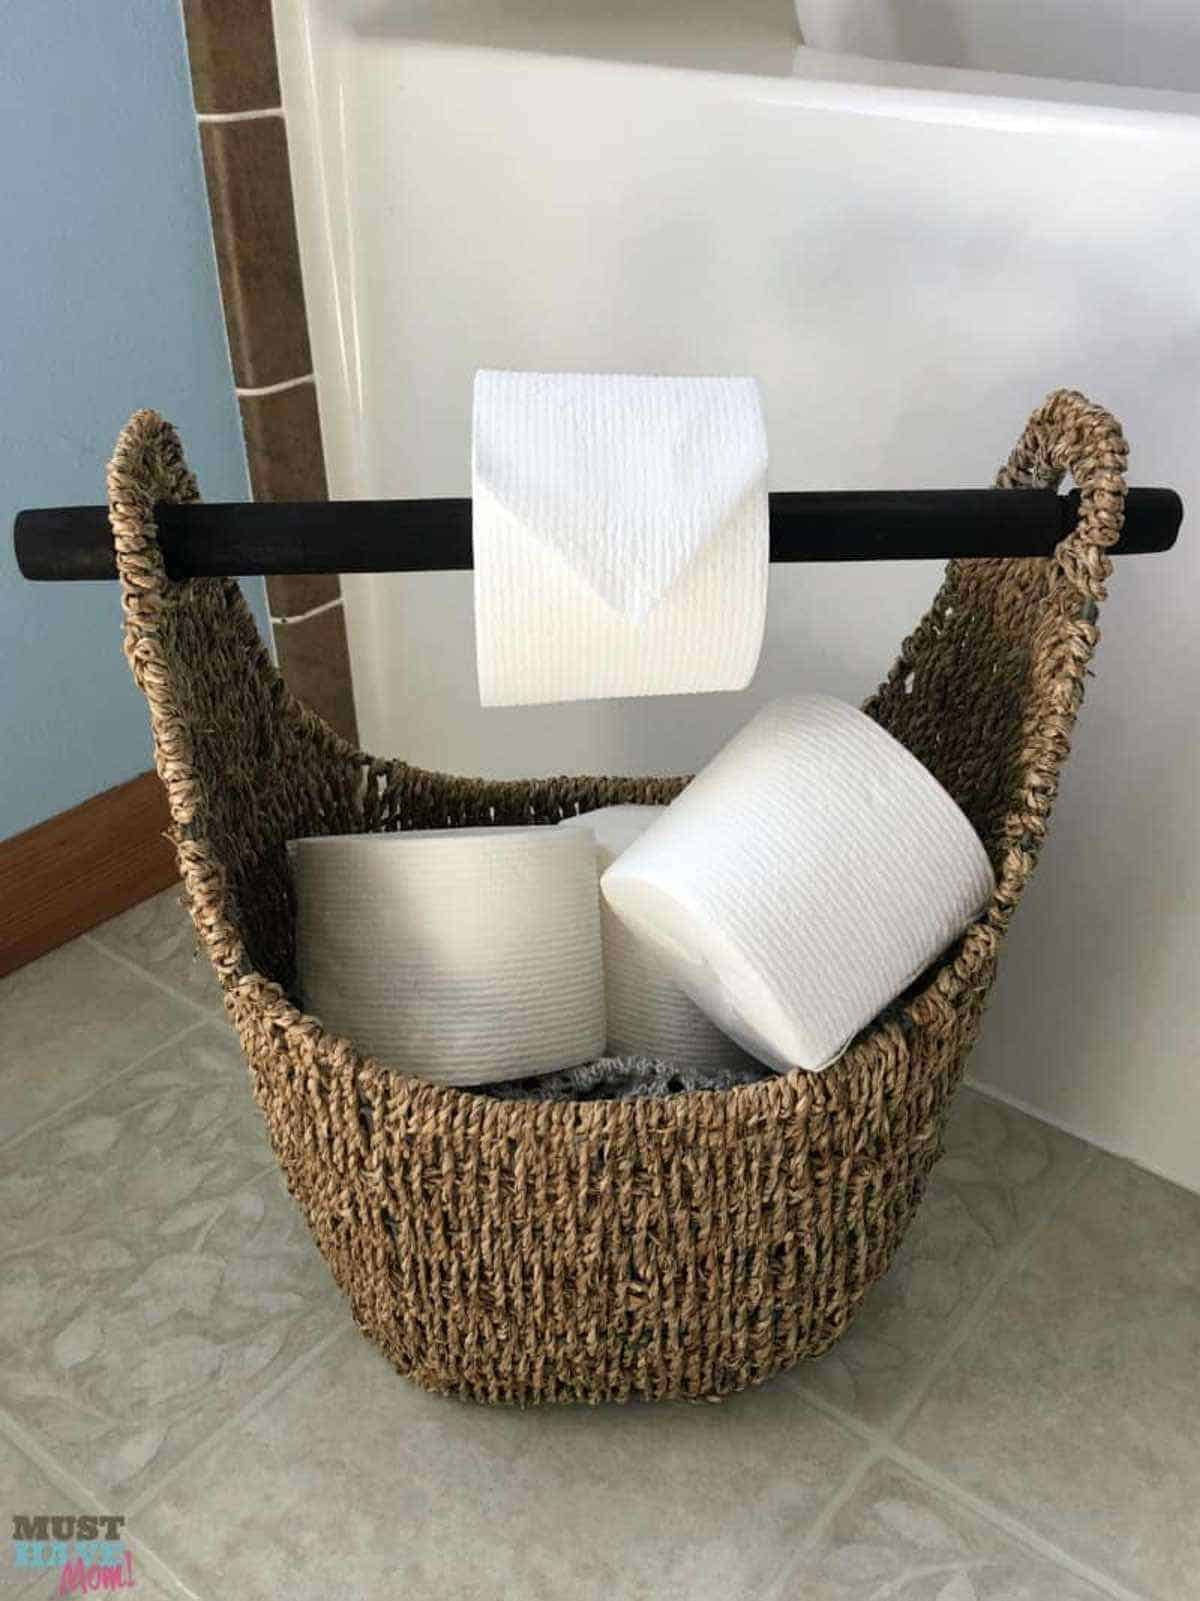 Toilet Paper Holder in a Basket